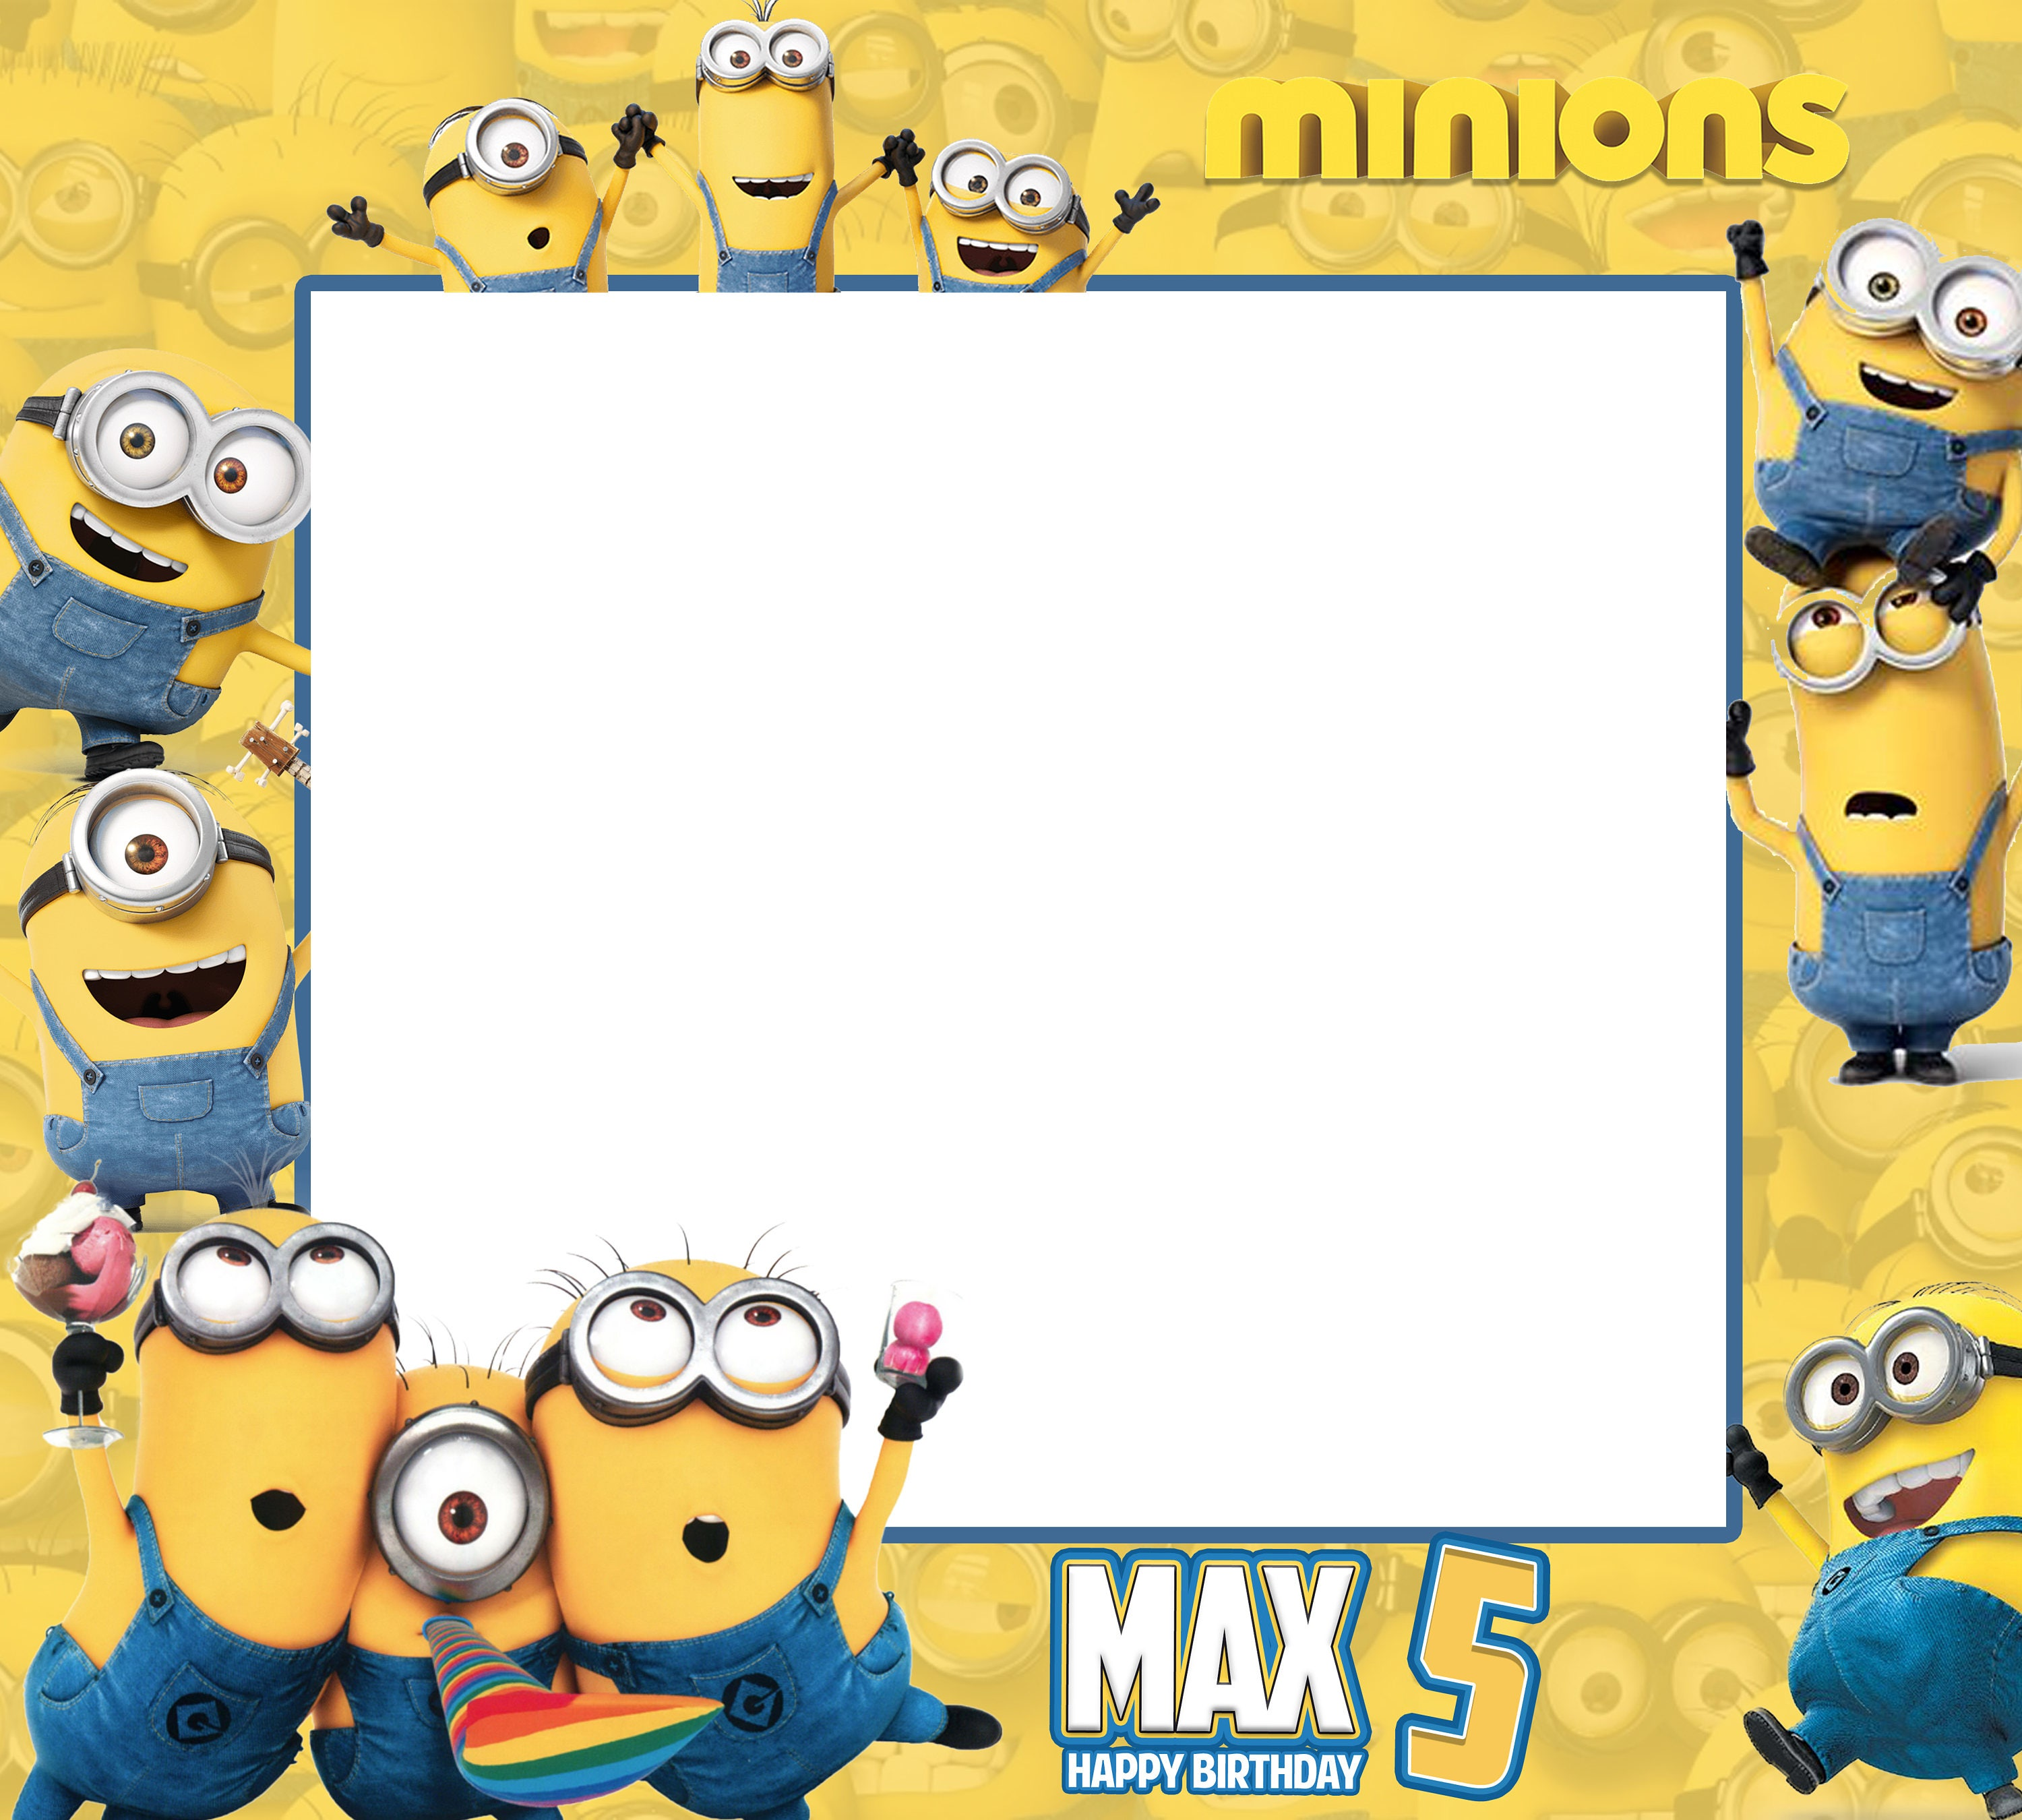 Minions Birthday Frames Minions Photo Booth Frame Frame